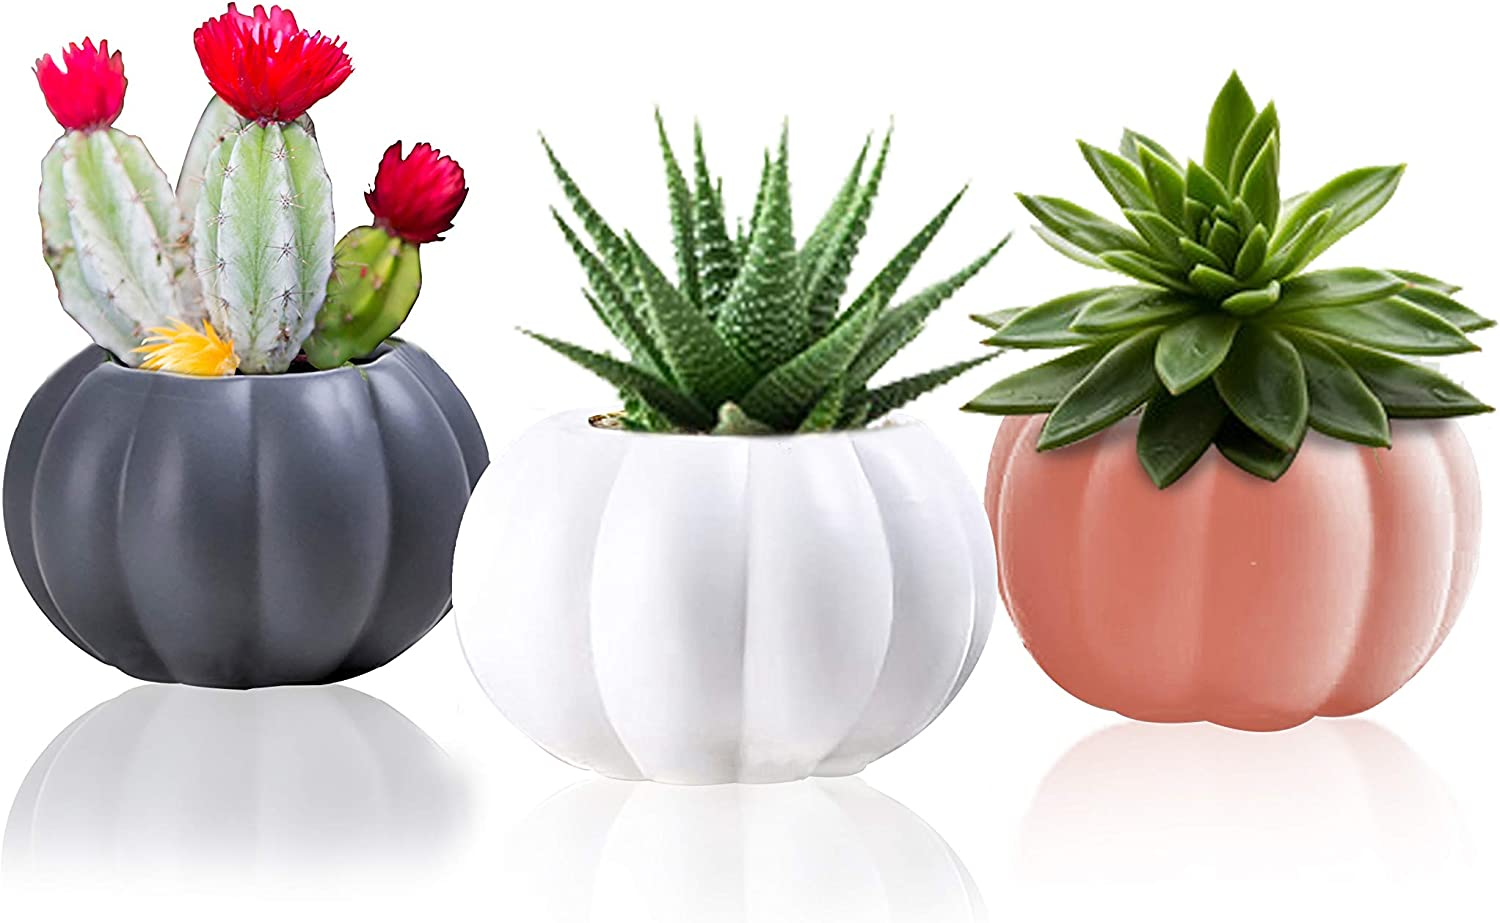 Ceramic Miniature Pumpkin Succulent Pots,Cute Halloween Decorations,Mini Pumpkin Cactus Planters,Small Round Set of 3 Indoor/Outdoor Flower Pot,Planter/Containers with Drainage Hole 2.5x3.3x1.6 Inch